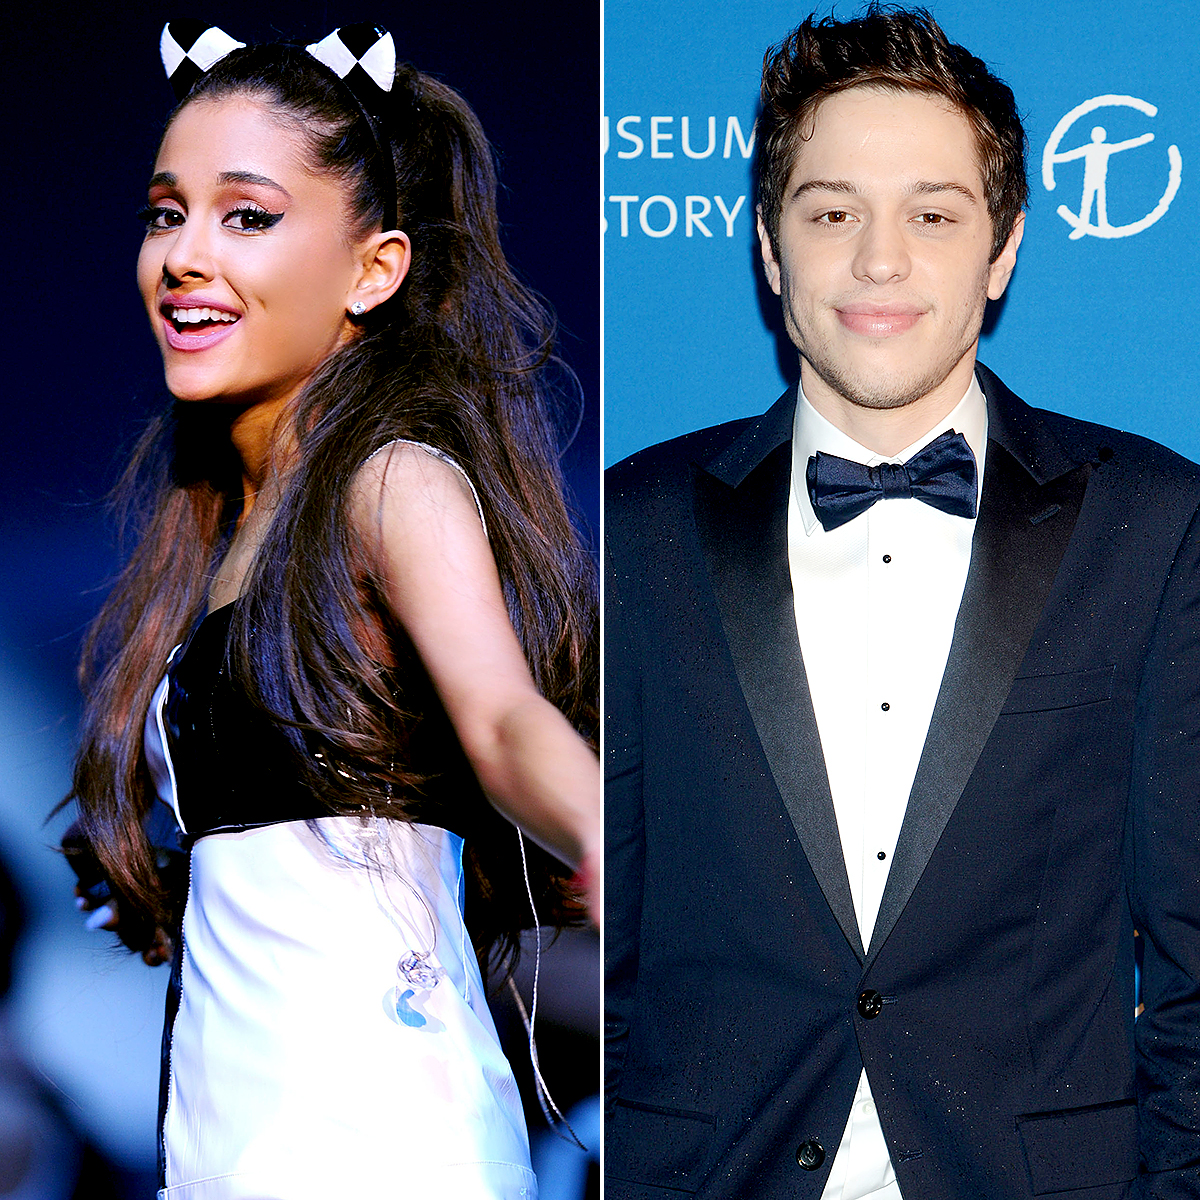 Ariana Grande gives hints about engagement with Pete Davidson